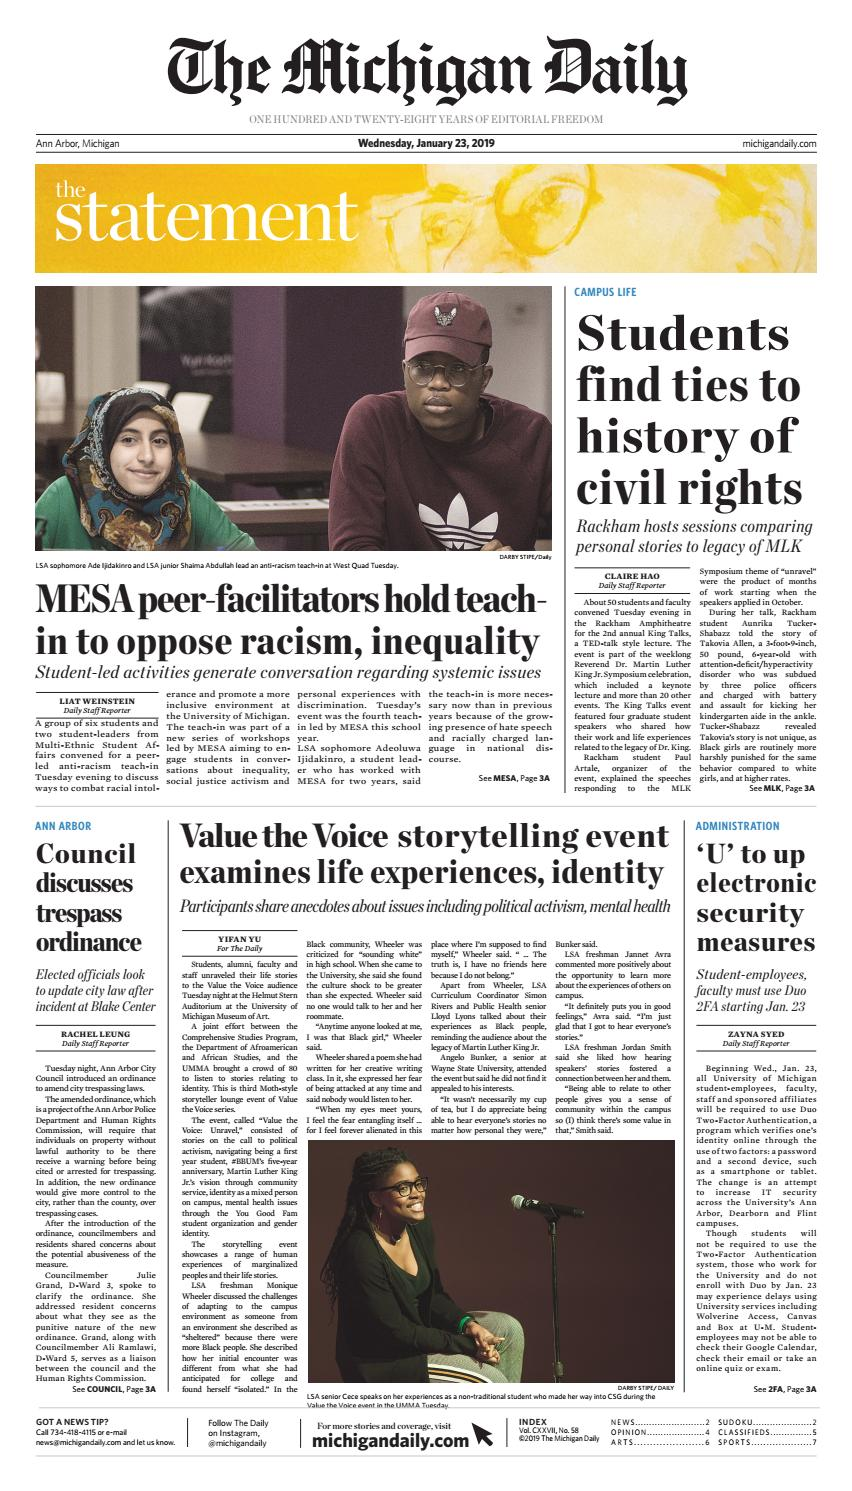 6d67c0a8e 2019-01-23 by The Michigan Daily - issuu